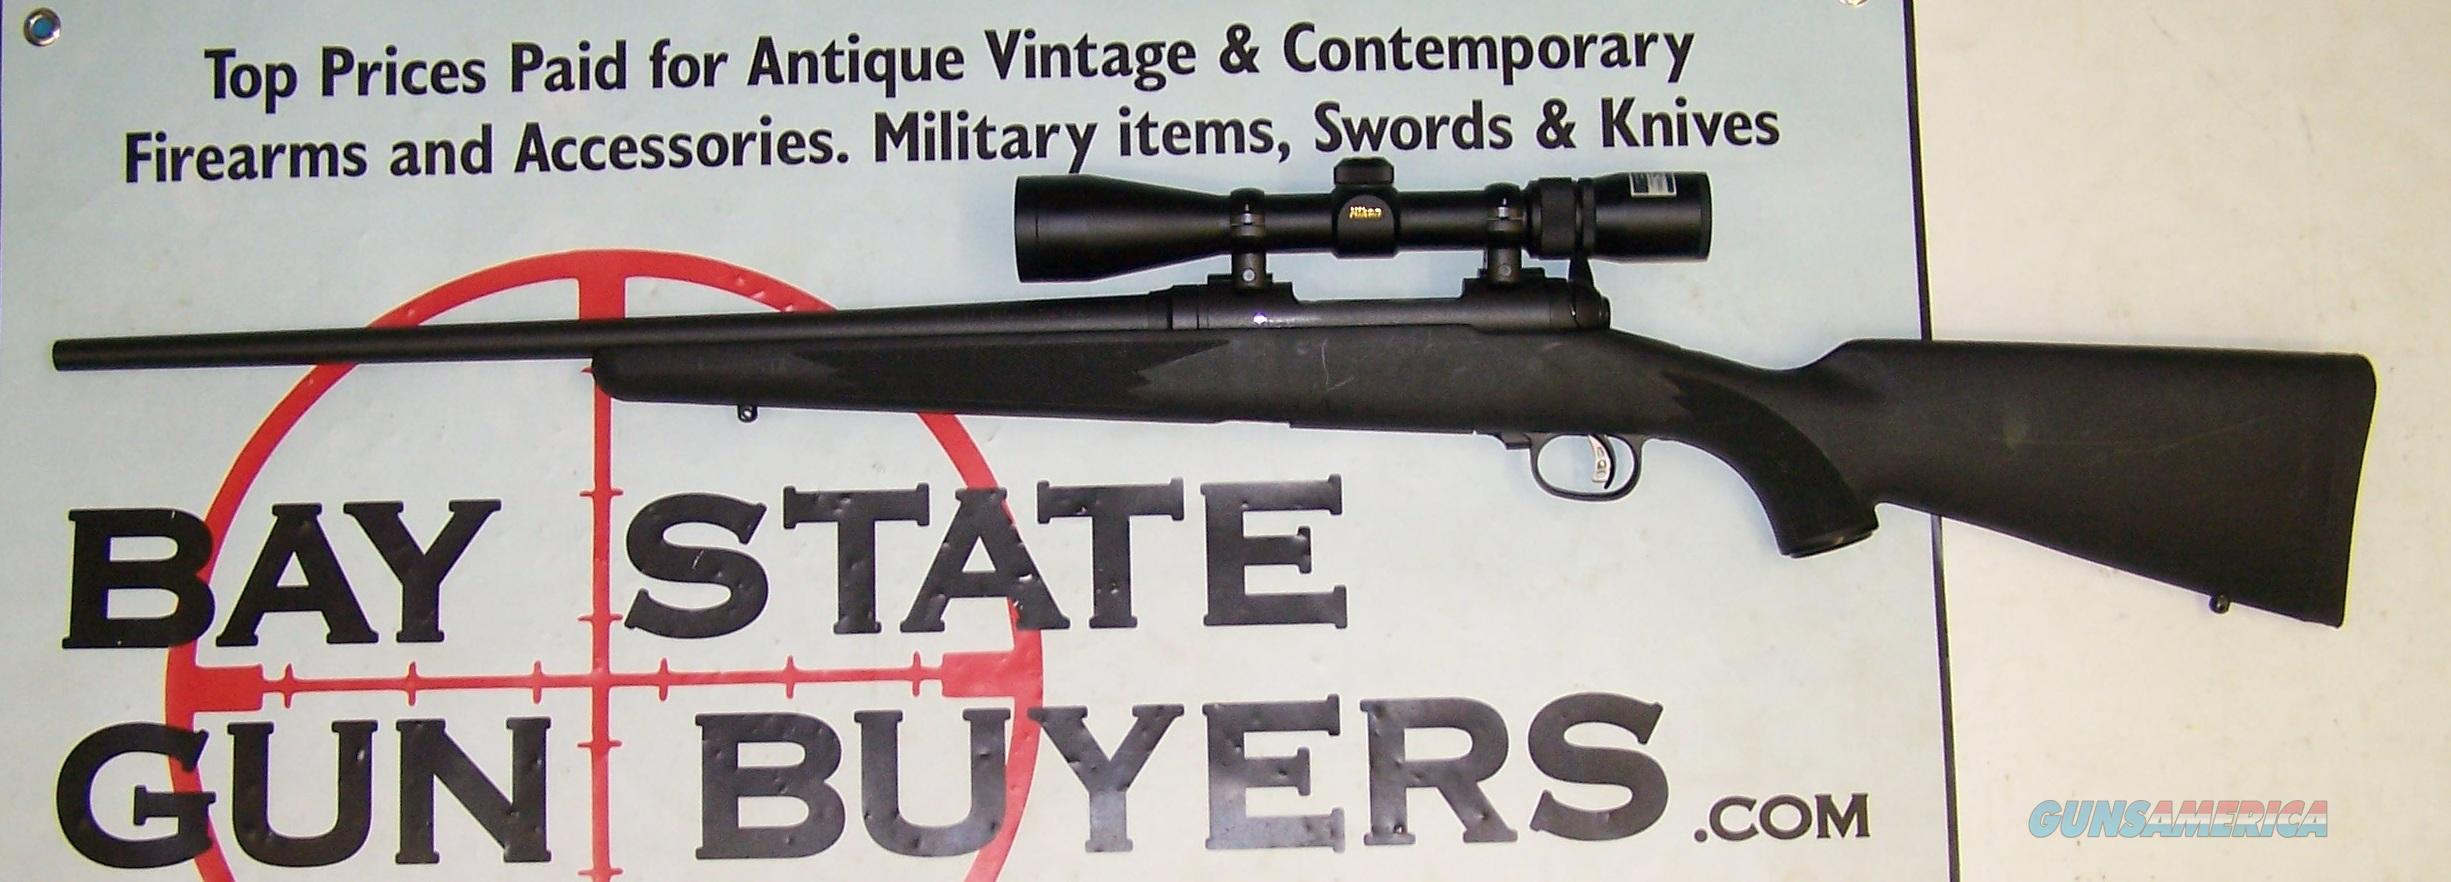 Savage Model 11 bolt action rifle .243 Win synthetic stock  Guns > Rifles > Savage Rifles > Accutrigger Models > Sporting